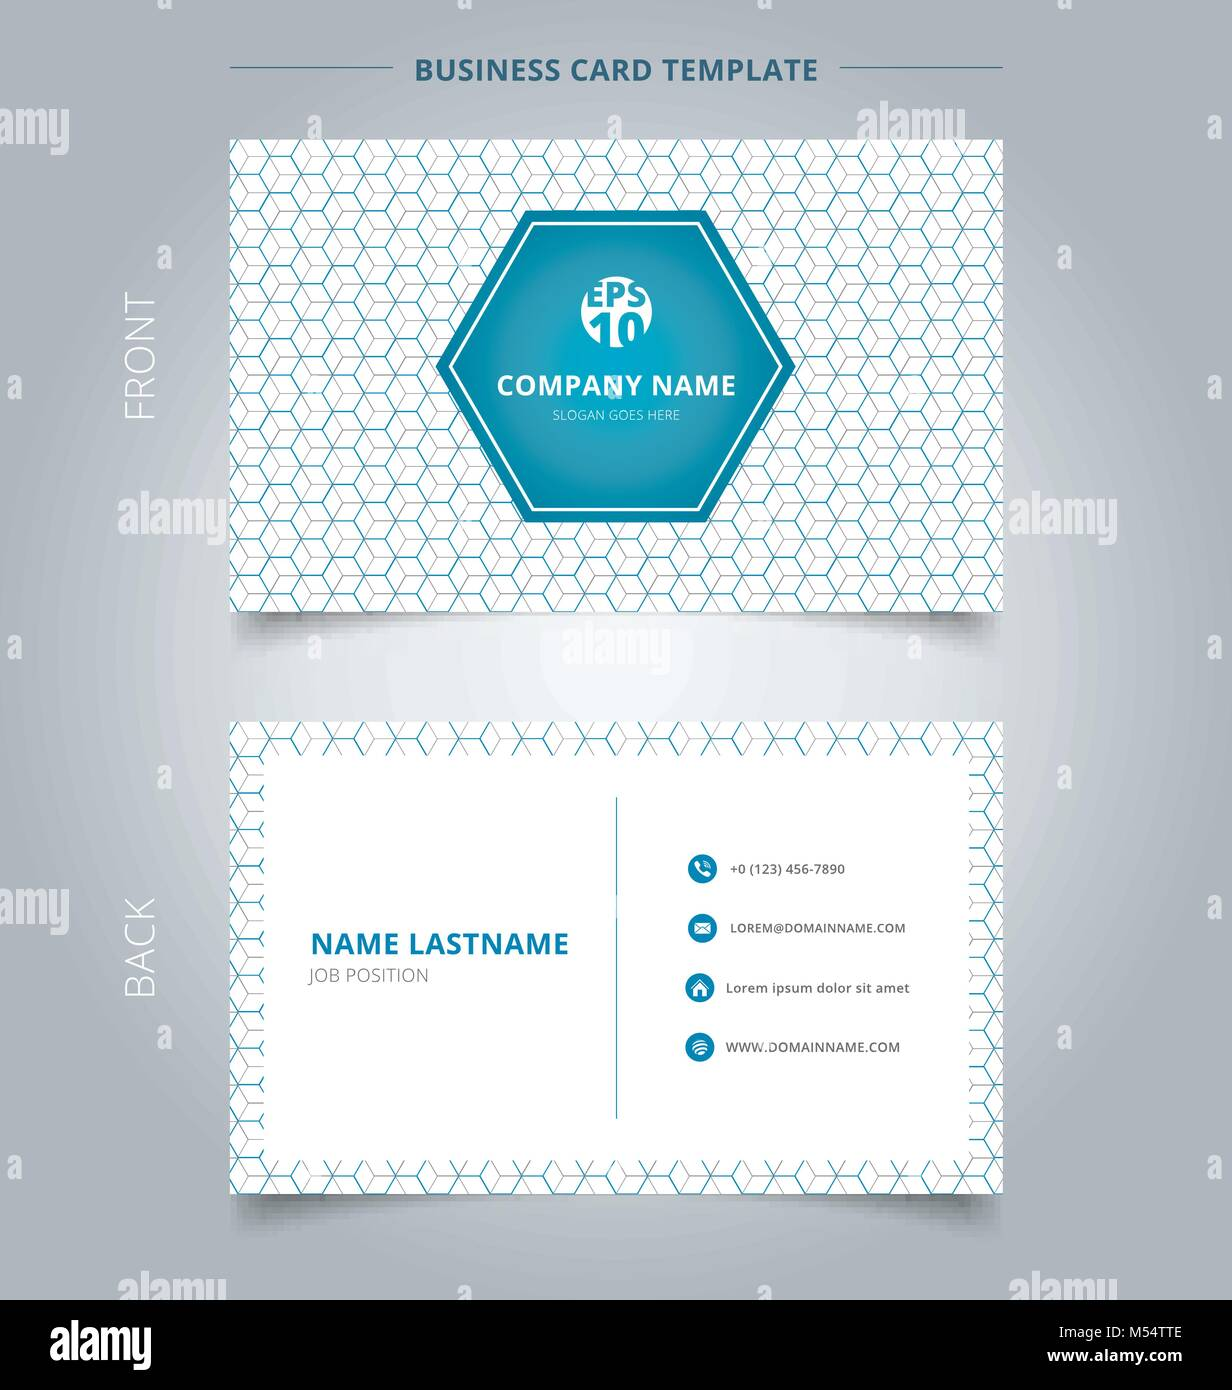 Creative business card and name card template geometric blue, gray ...